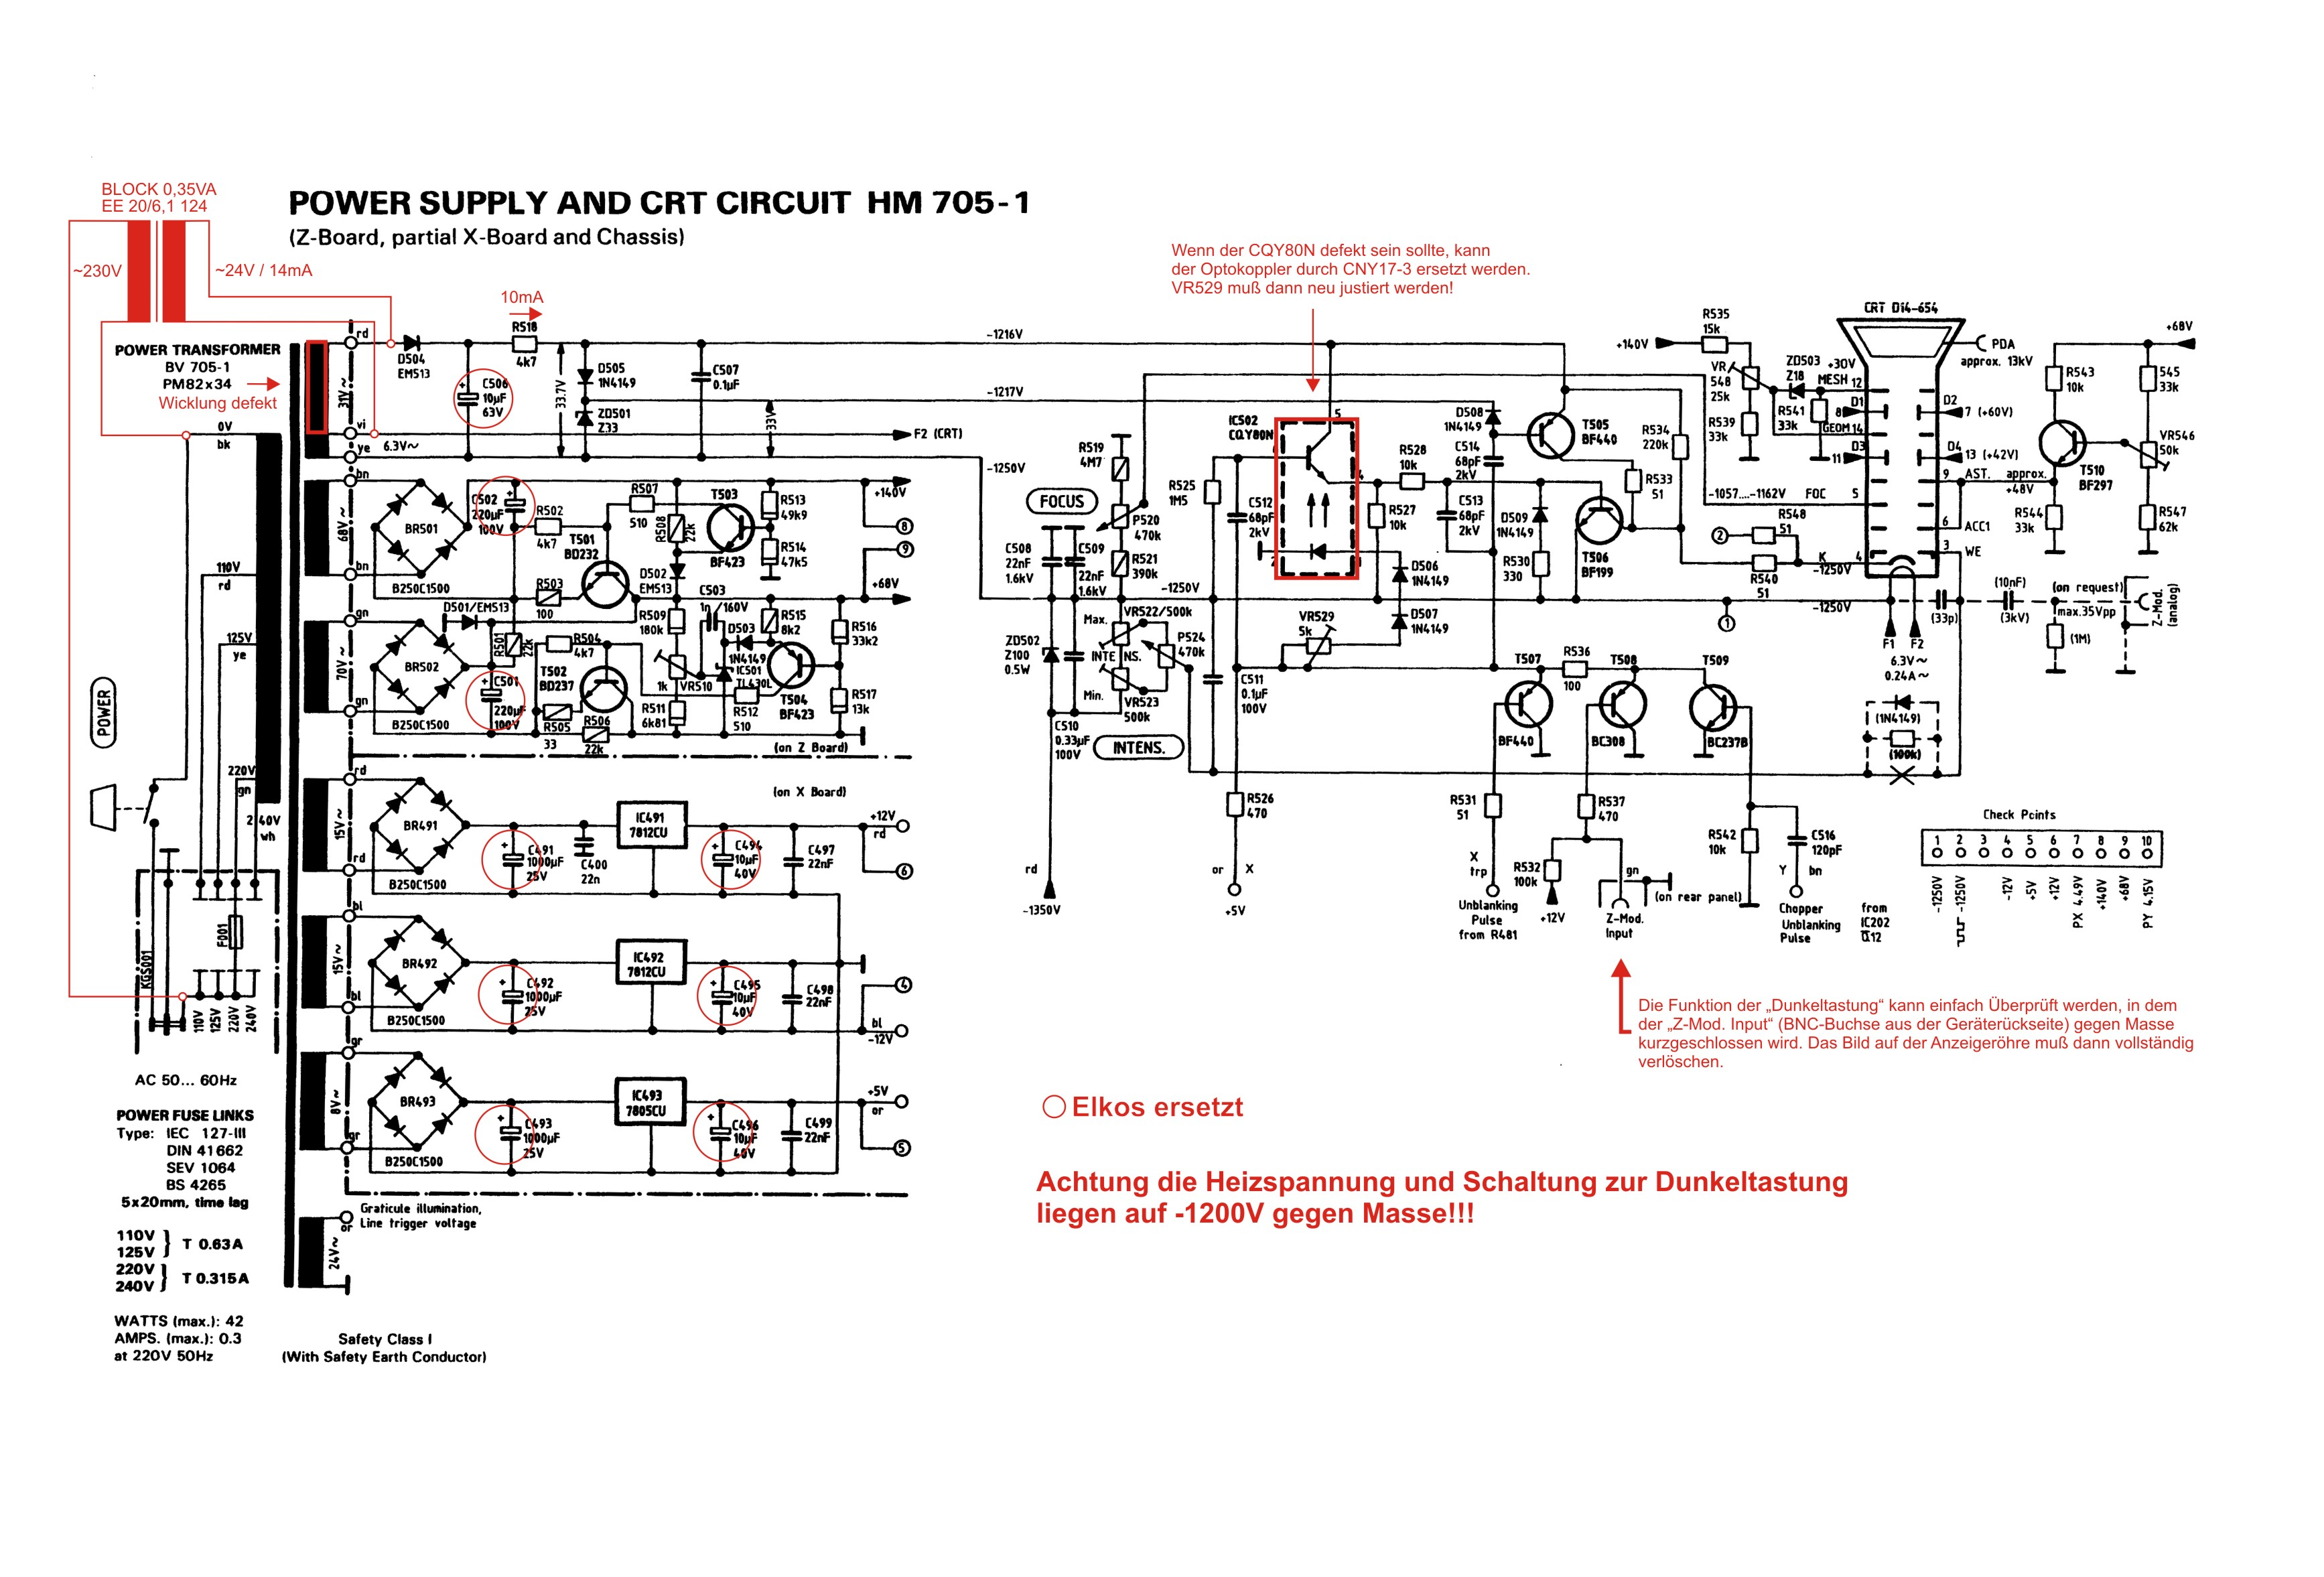 Wiring E53 Diagram Radio Electrical. Diagrams. Wiring